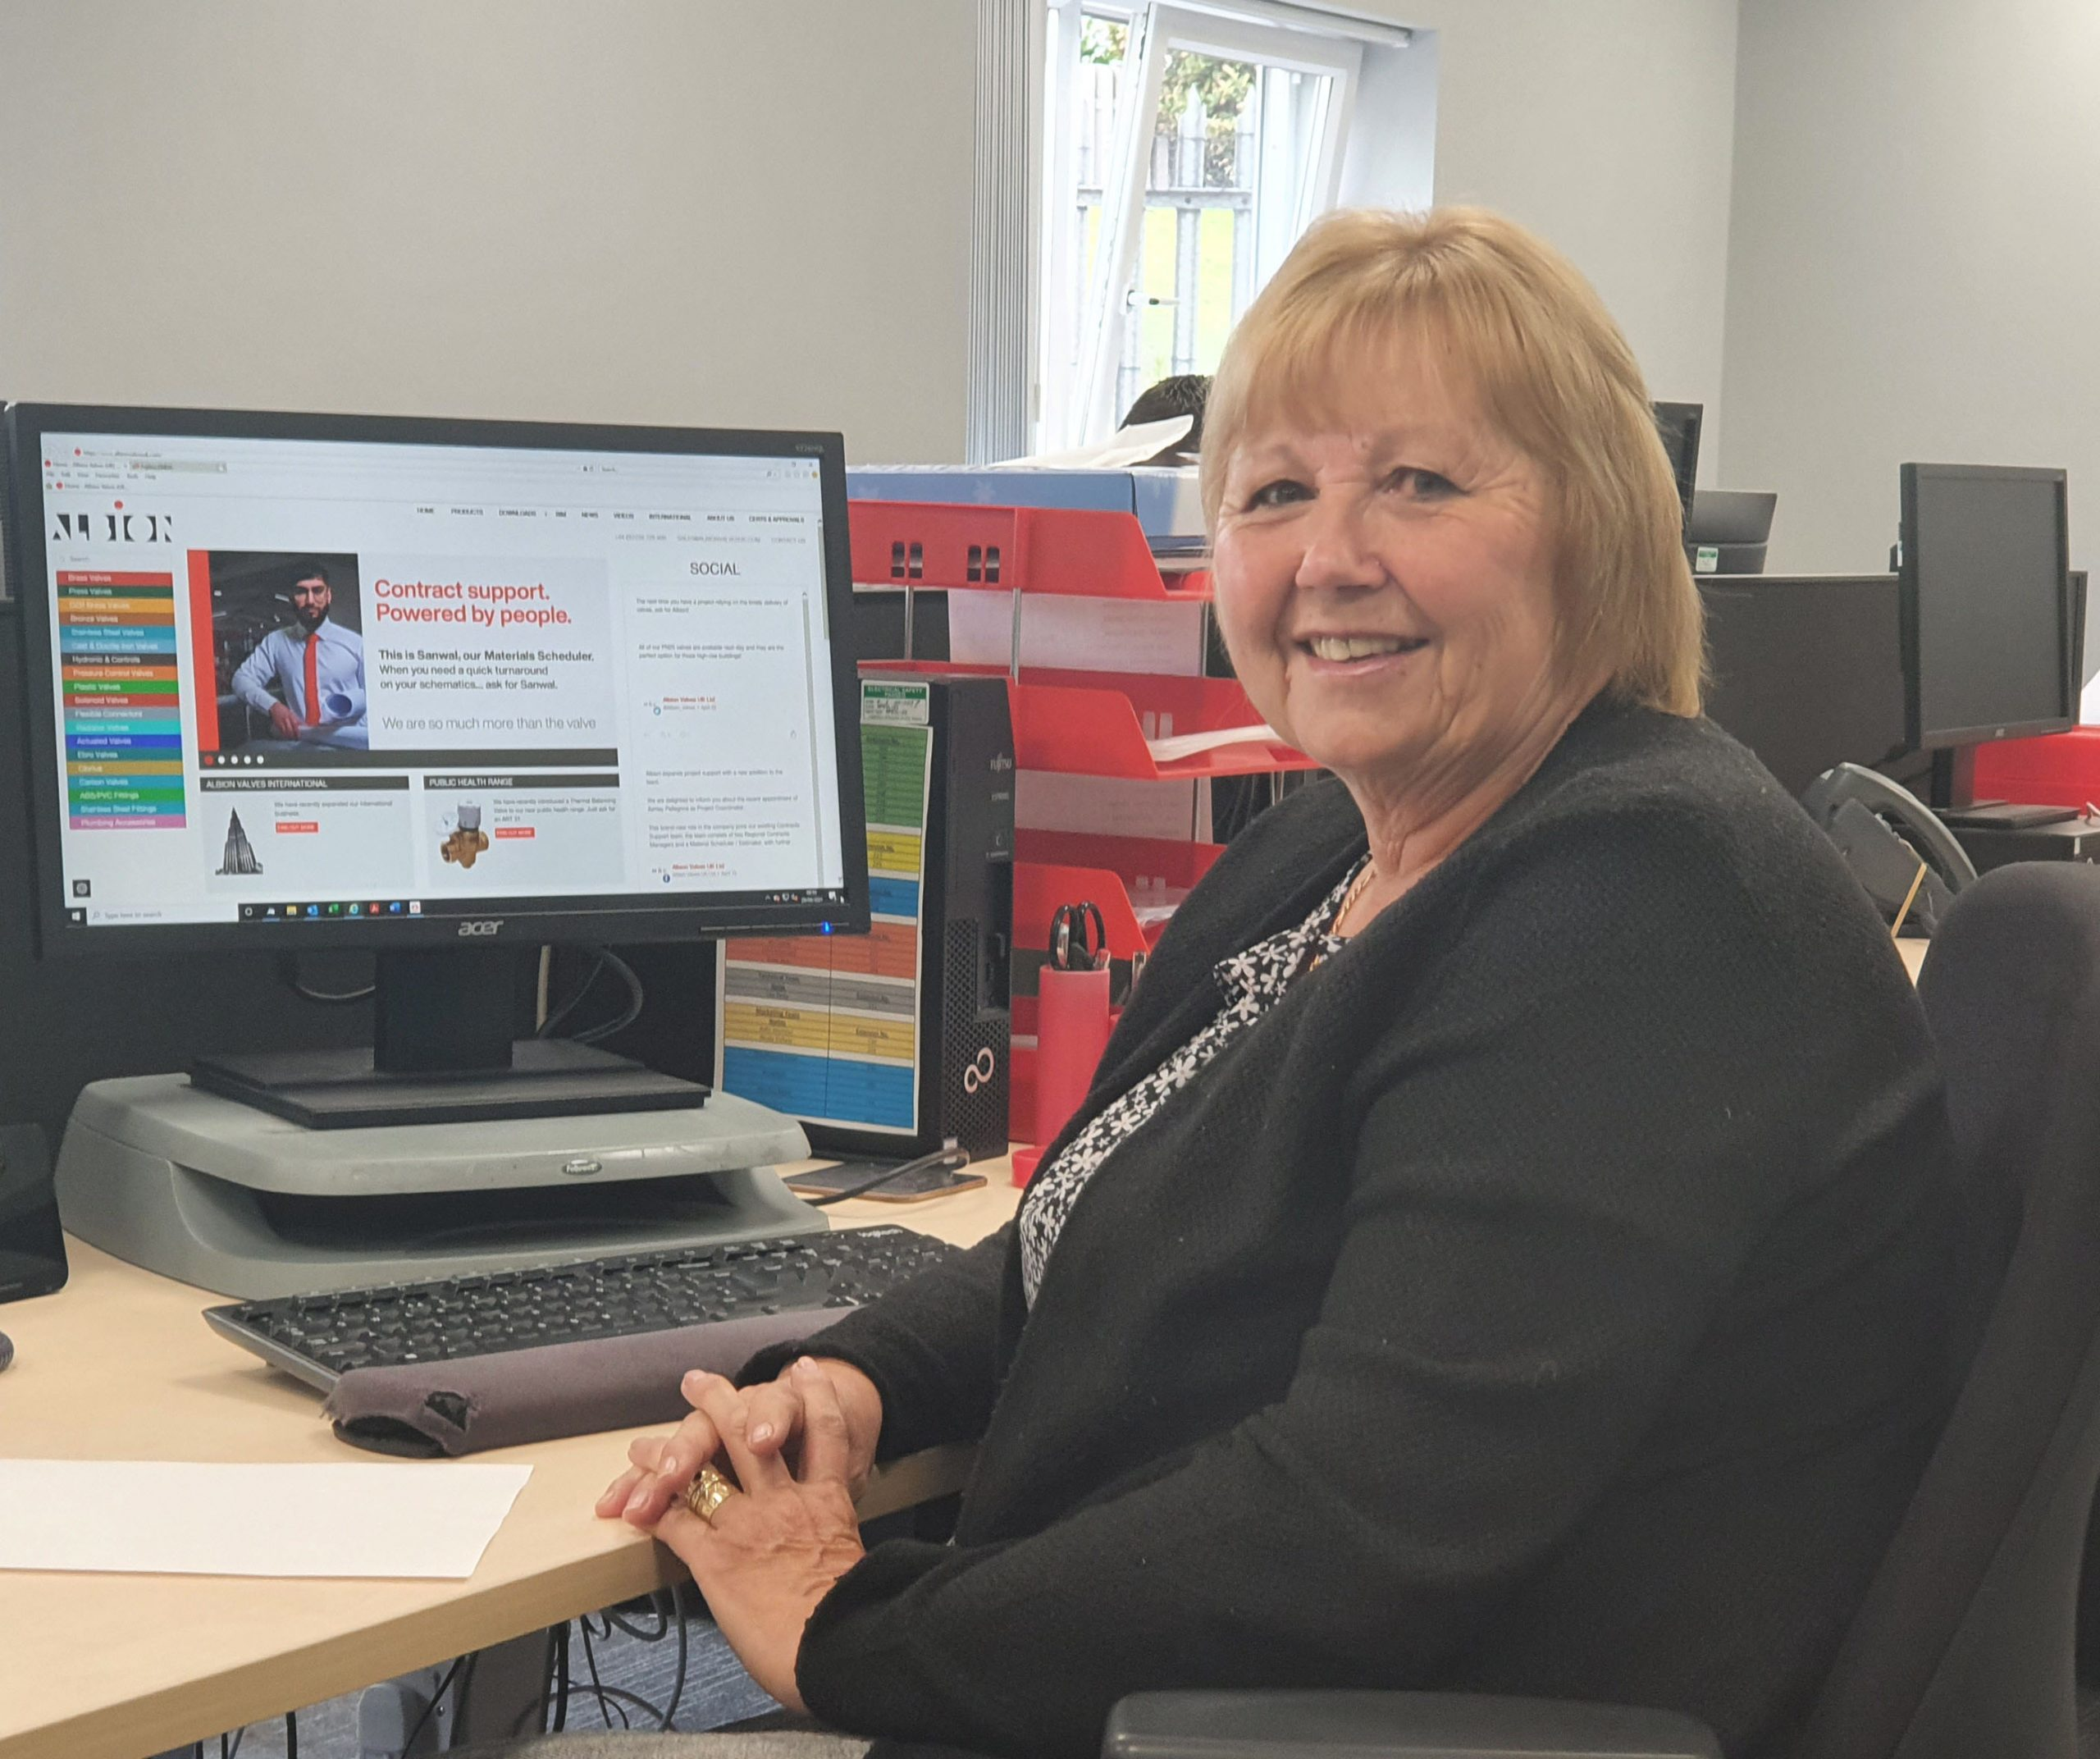 Margery Booth - Albion's Internal Sales Administrator